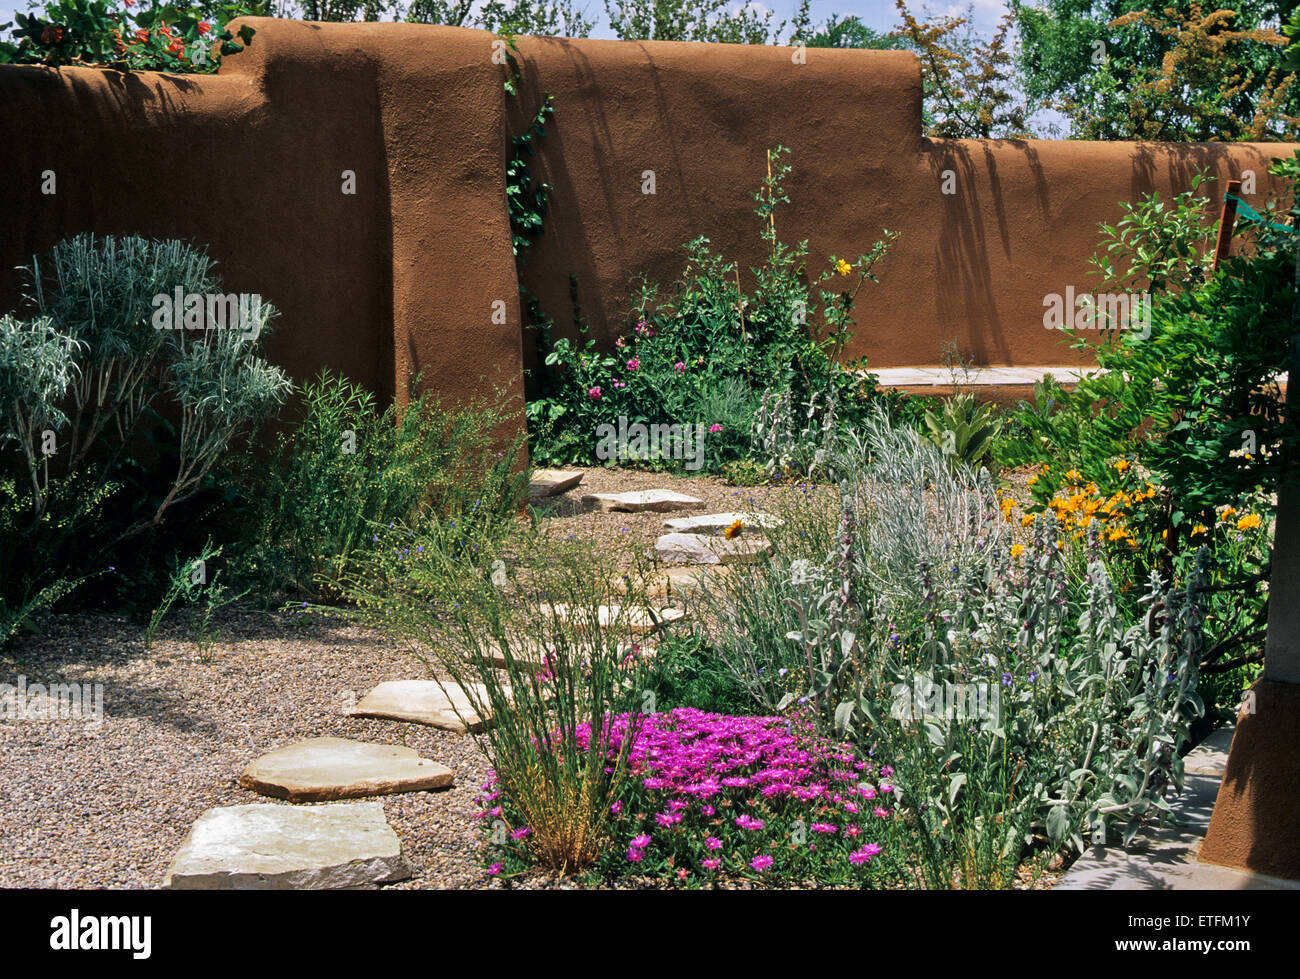 The Gardens Of Santa Fe New Mexico Offer A Constant Supply Of Stock Photo Alamy